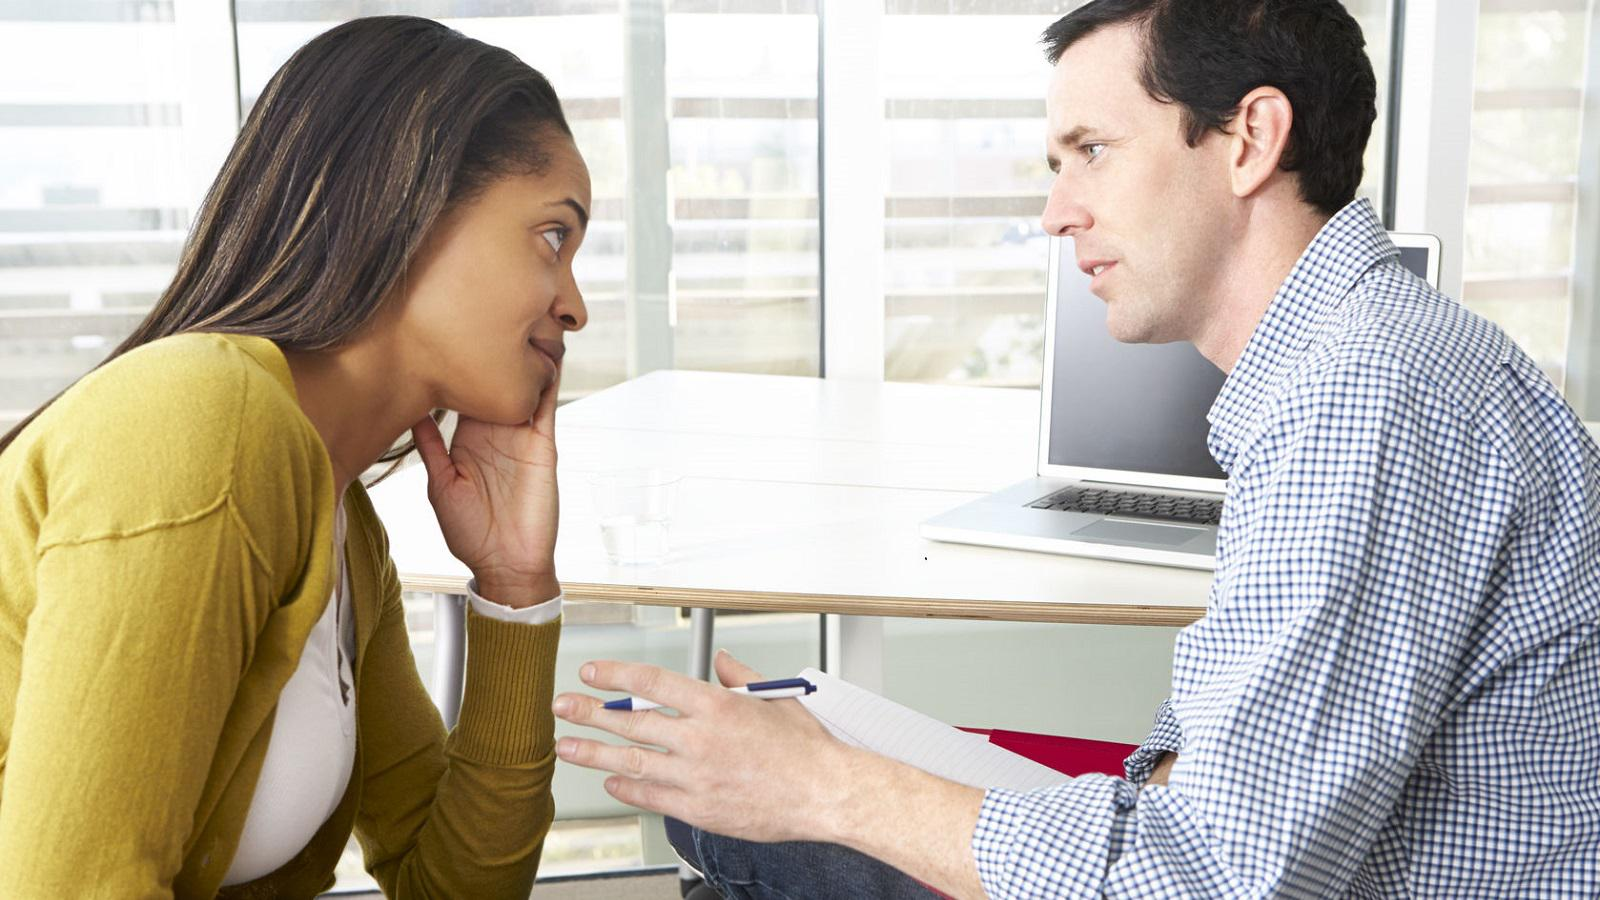 A man in a checkered shirt speaks to a woman in a sweater. Text says Find specialized treatment programs and supportive services.